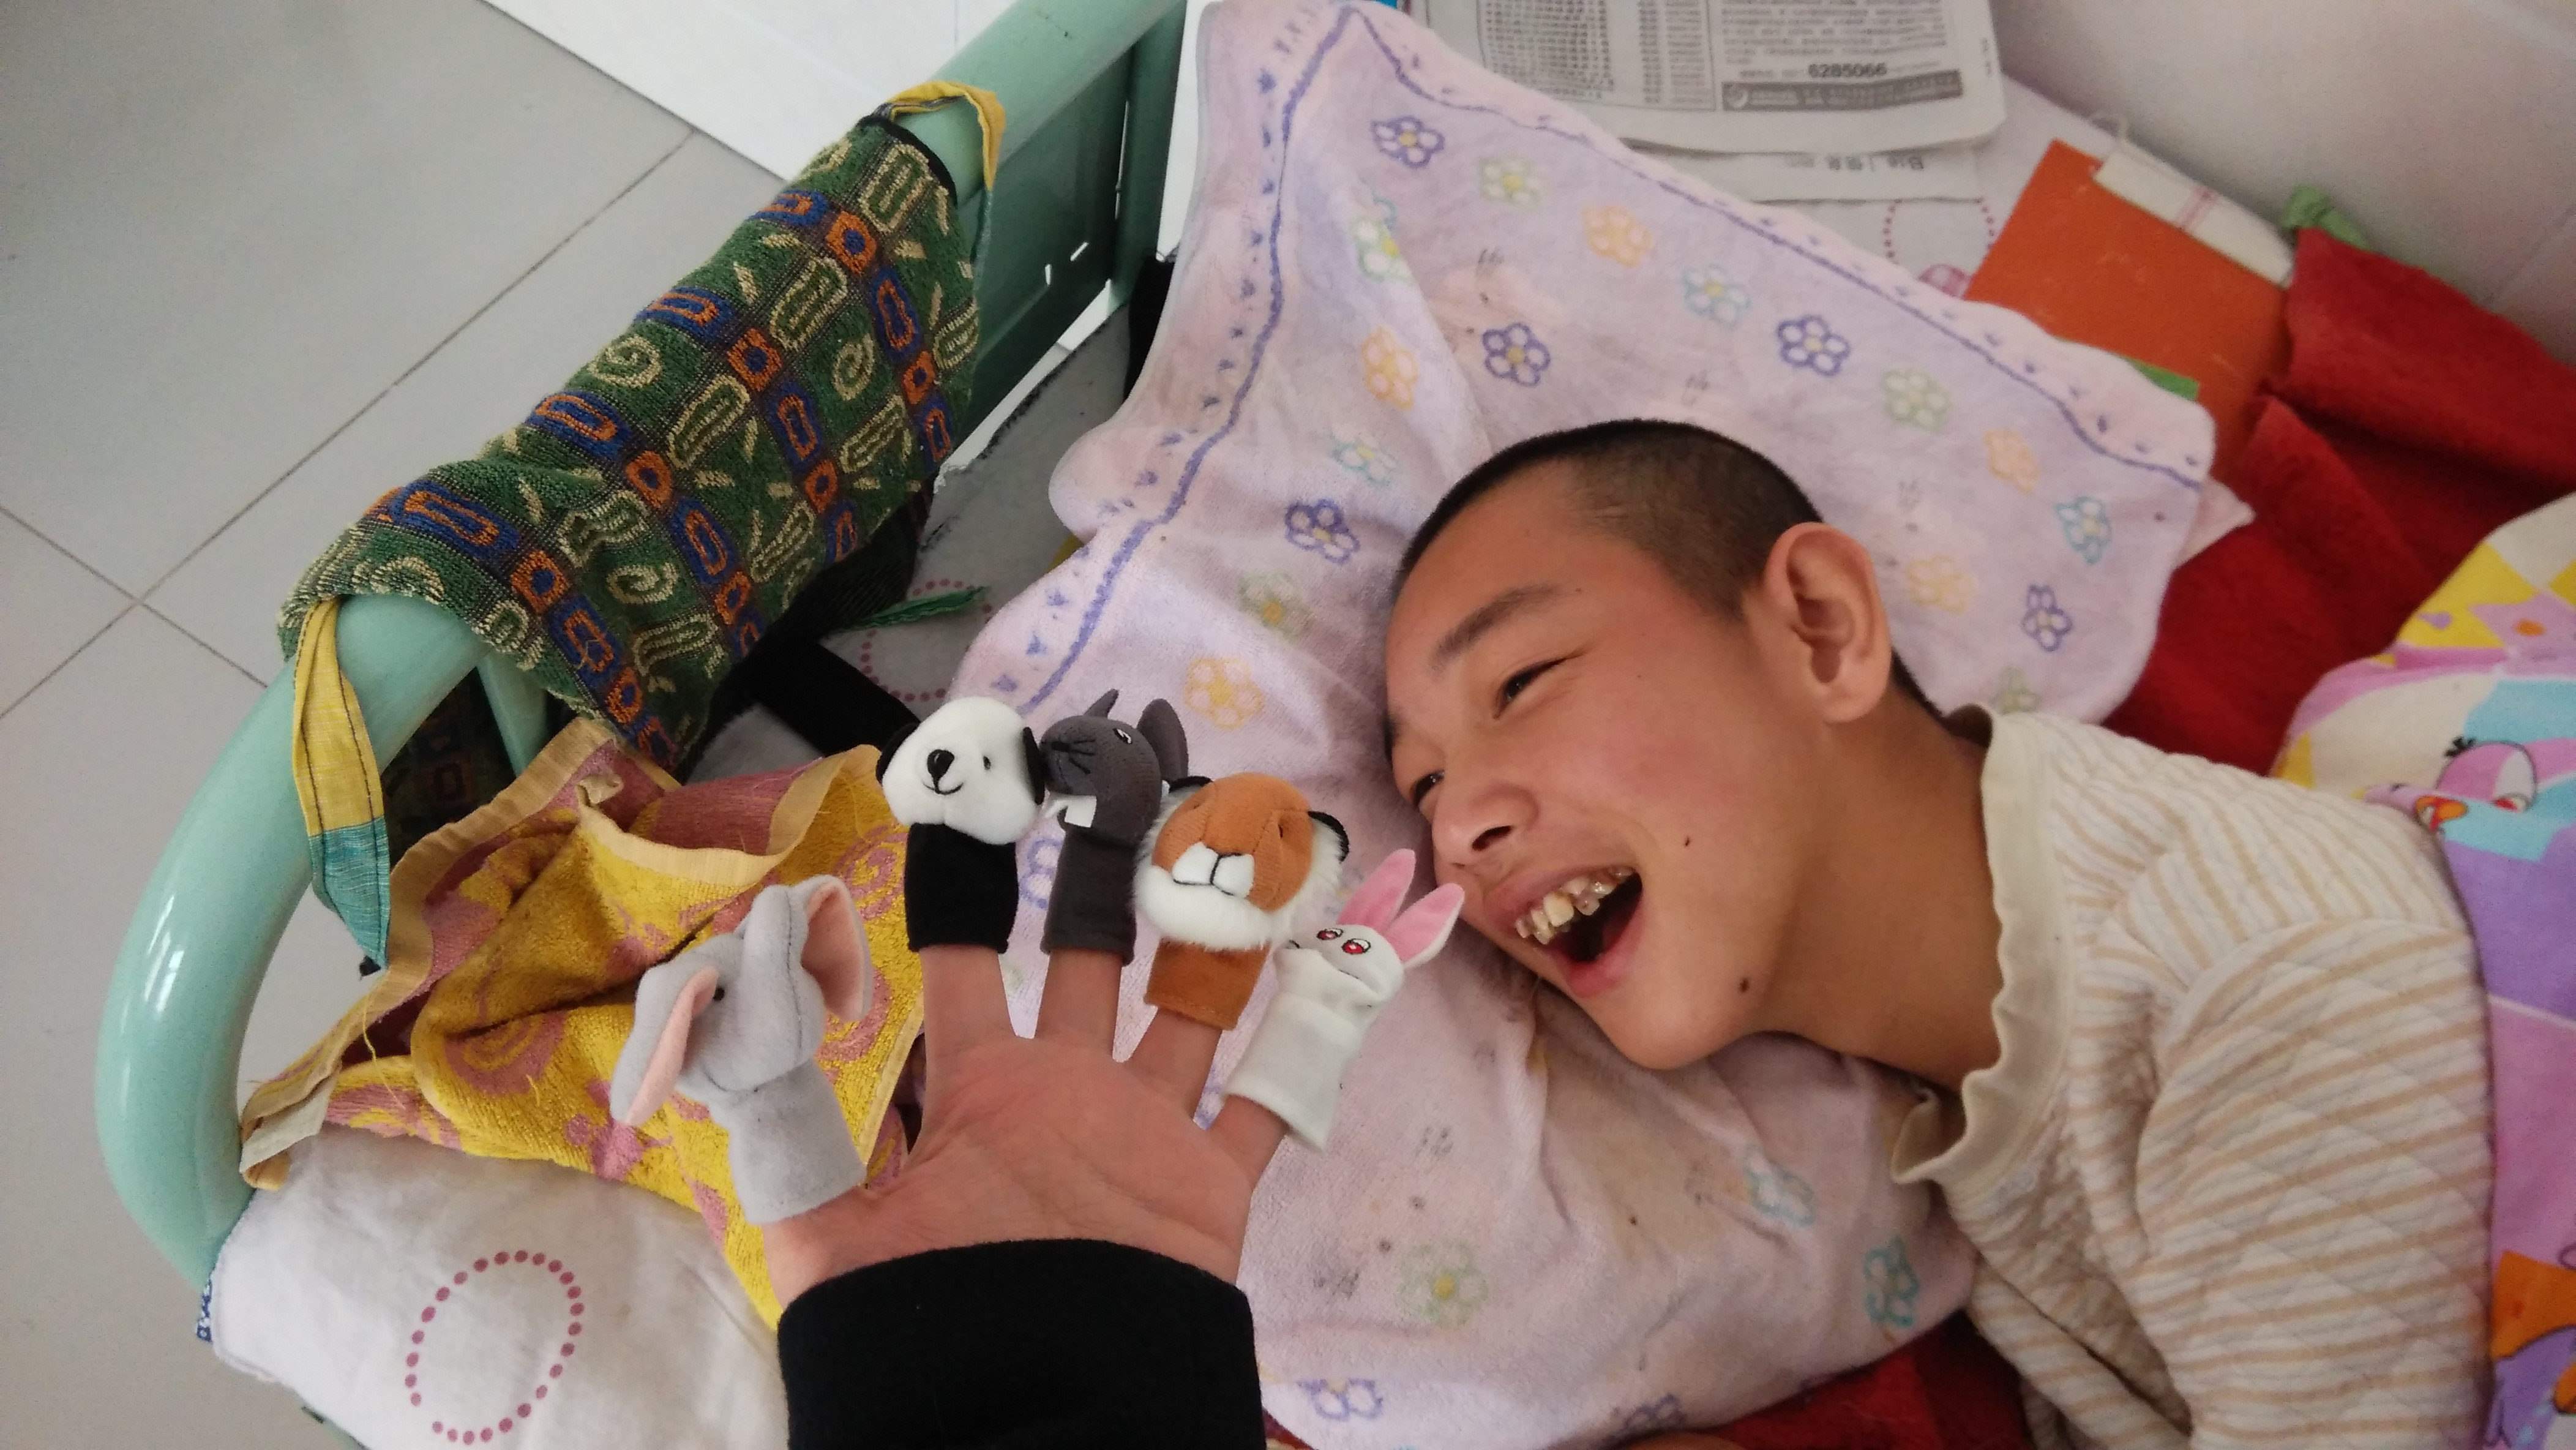 Gui laughs and smiles during story time, especially when the finger puppets are active!